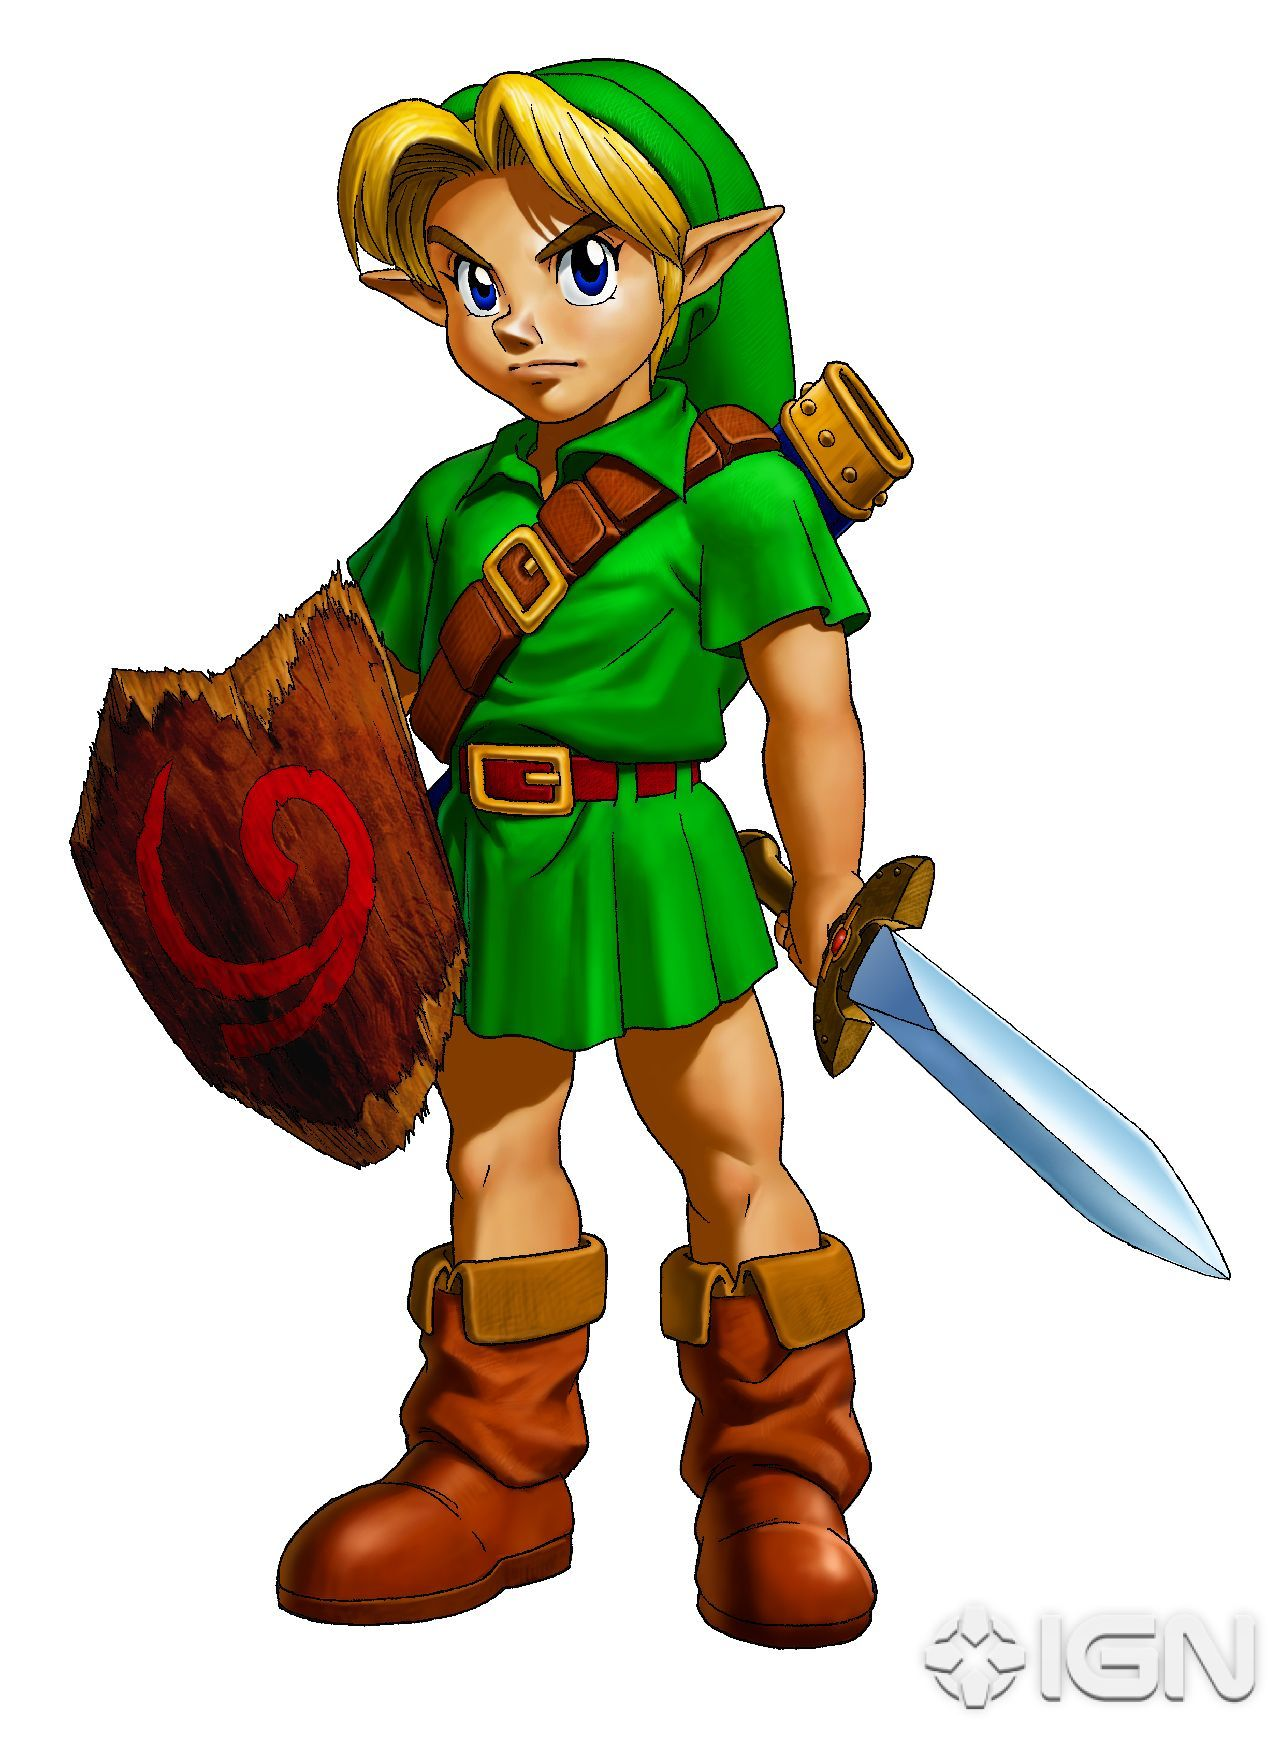 Zelda clipart link to past Clipart ClipartFest Time Clipart Ocarina